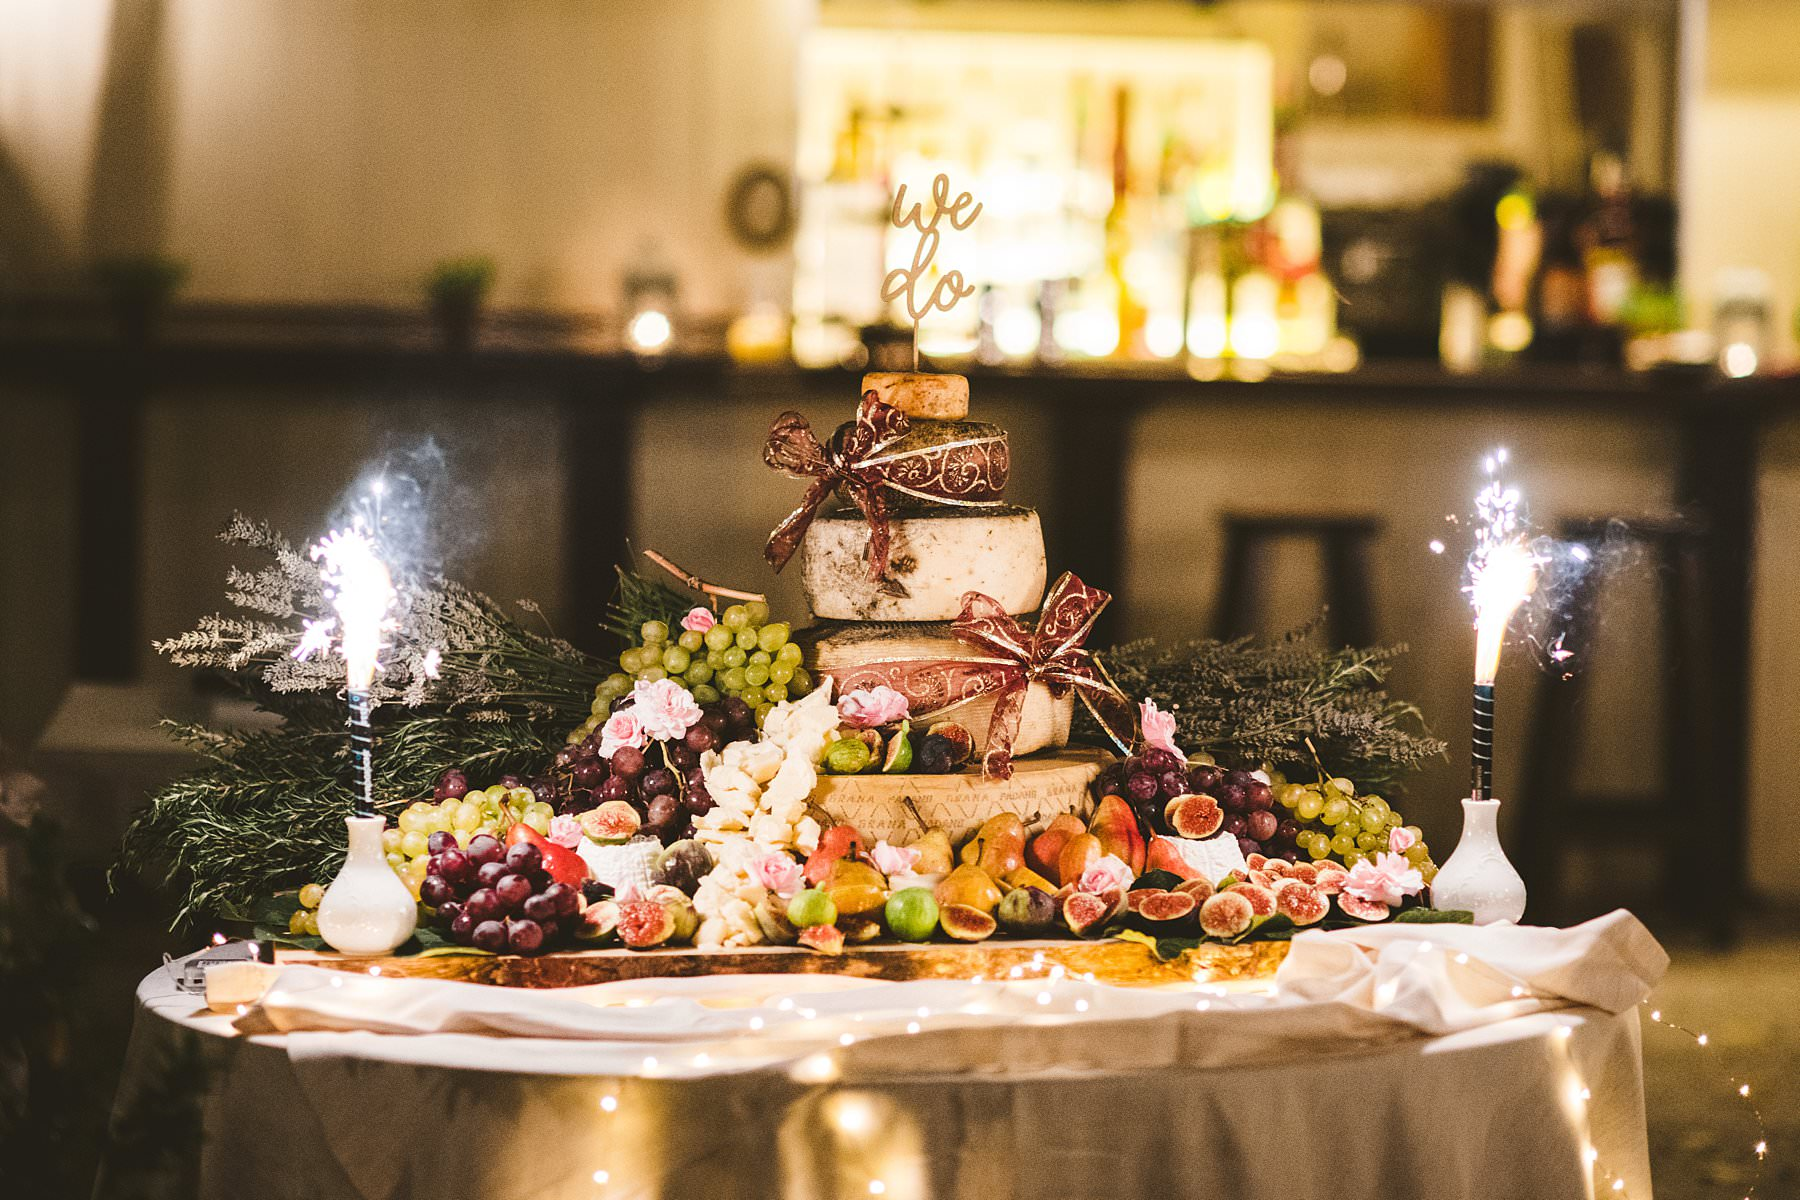 Special wedding cake made of cheese at Villa Monte Solare, Umbria